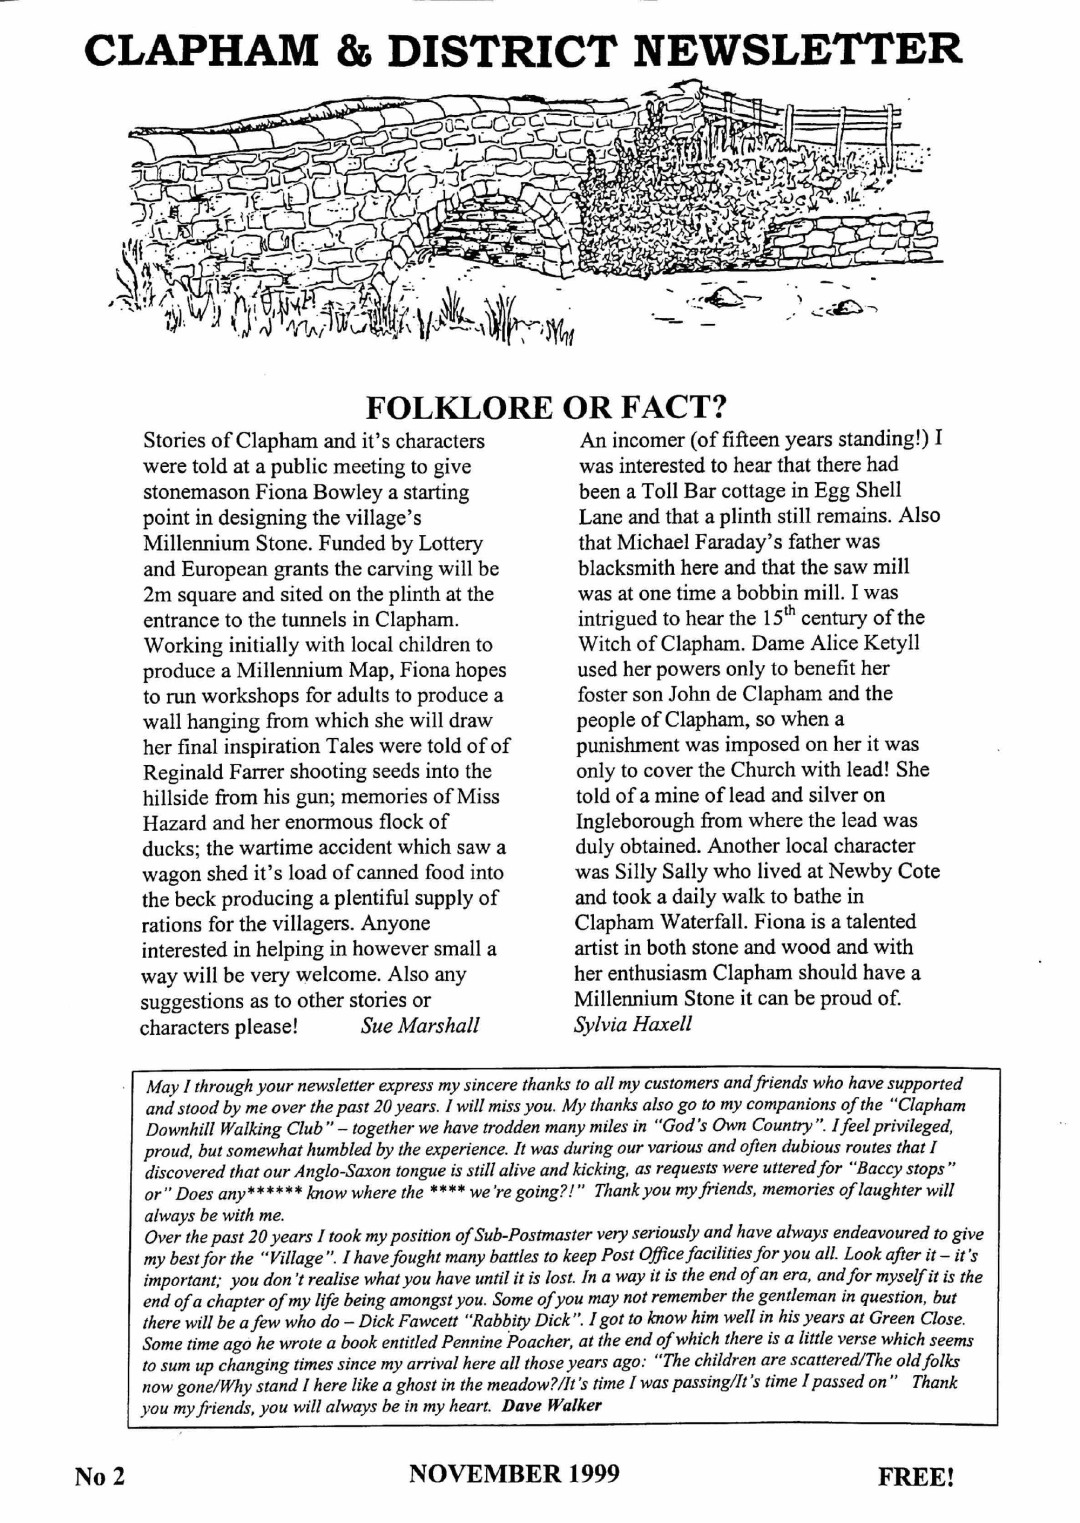 Clapham_Newsletter_No2_November_1999-1